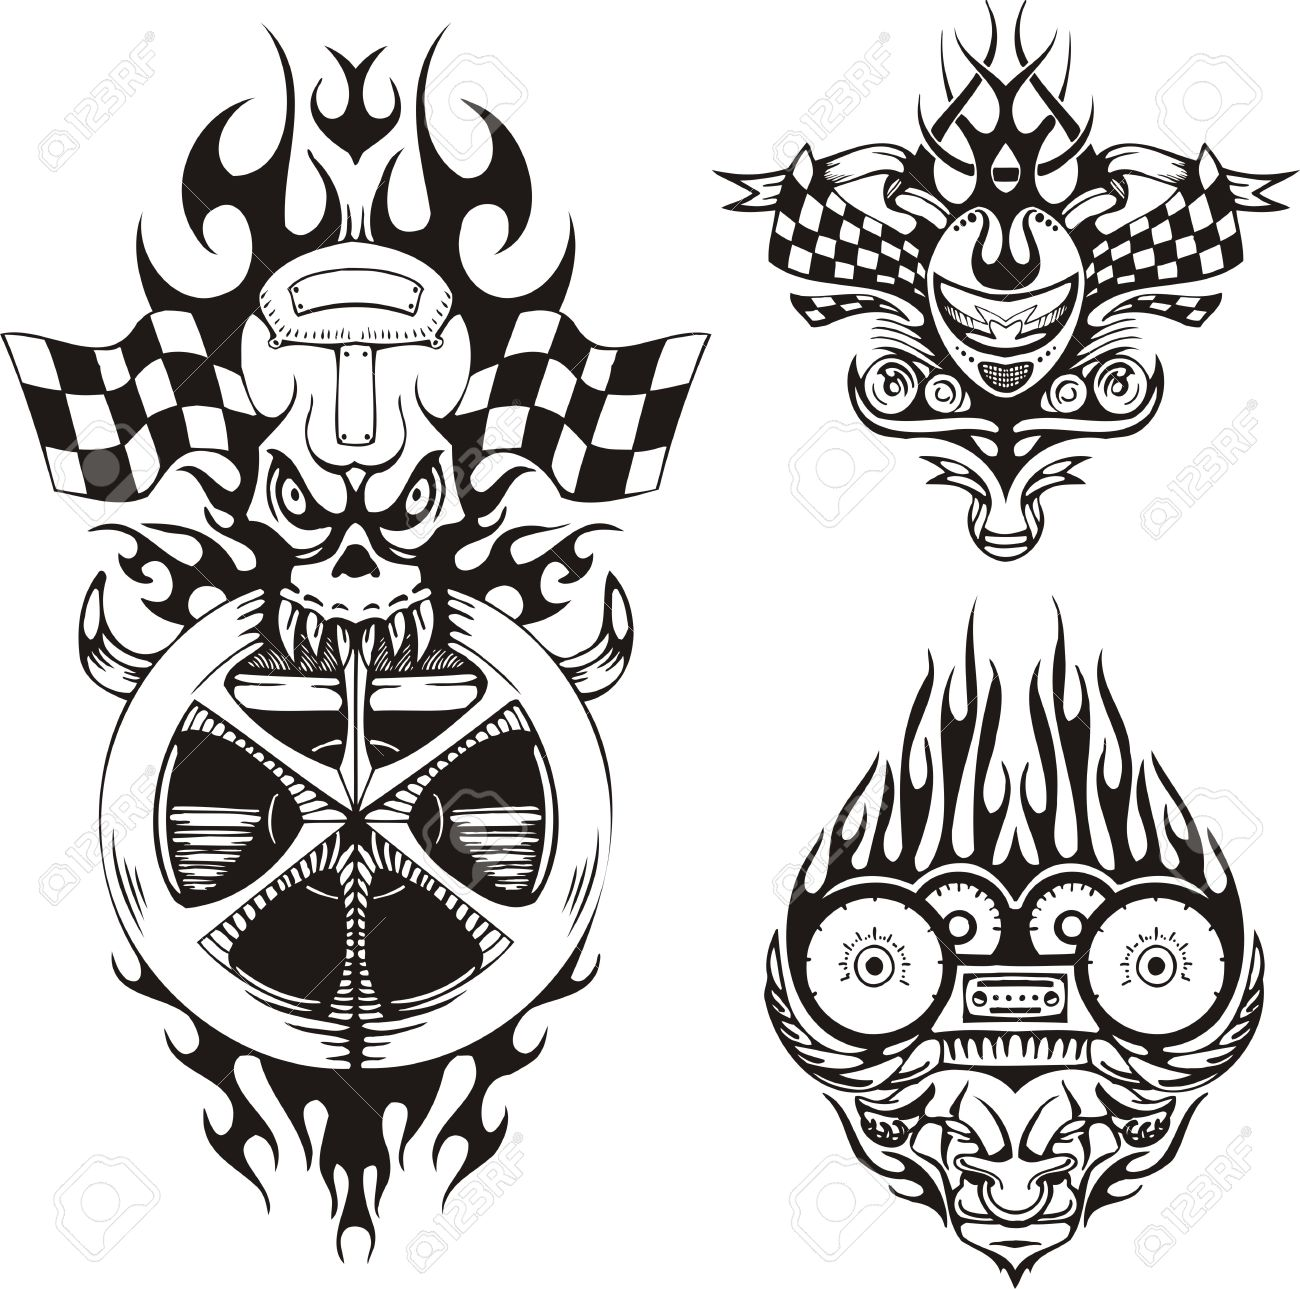 Skull with flags and a horned demon. Racing compositions. Vector illustration ready for vinyl cutting. Stock Vector - 8652308